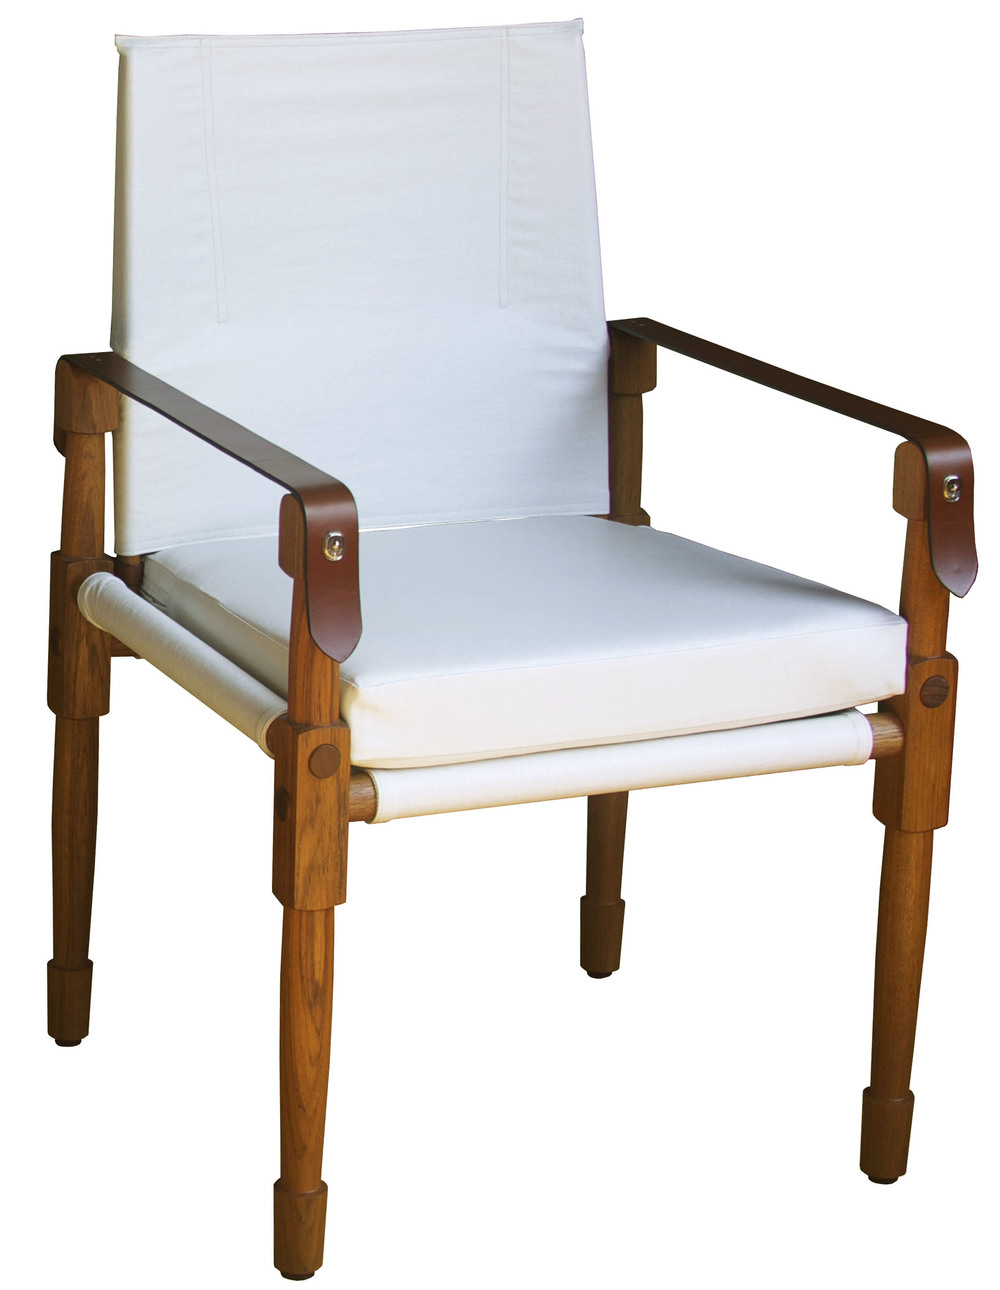 Large Chatwin Dining and Desk Chair  Oiled teak, C&C Milano coated linen (COM) and saddle English bridle leather straps   20